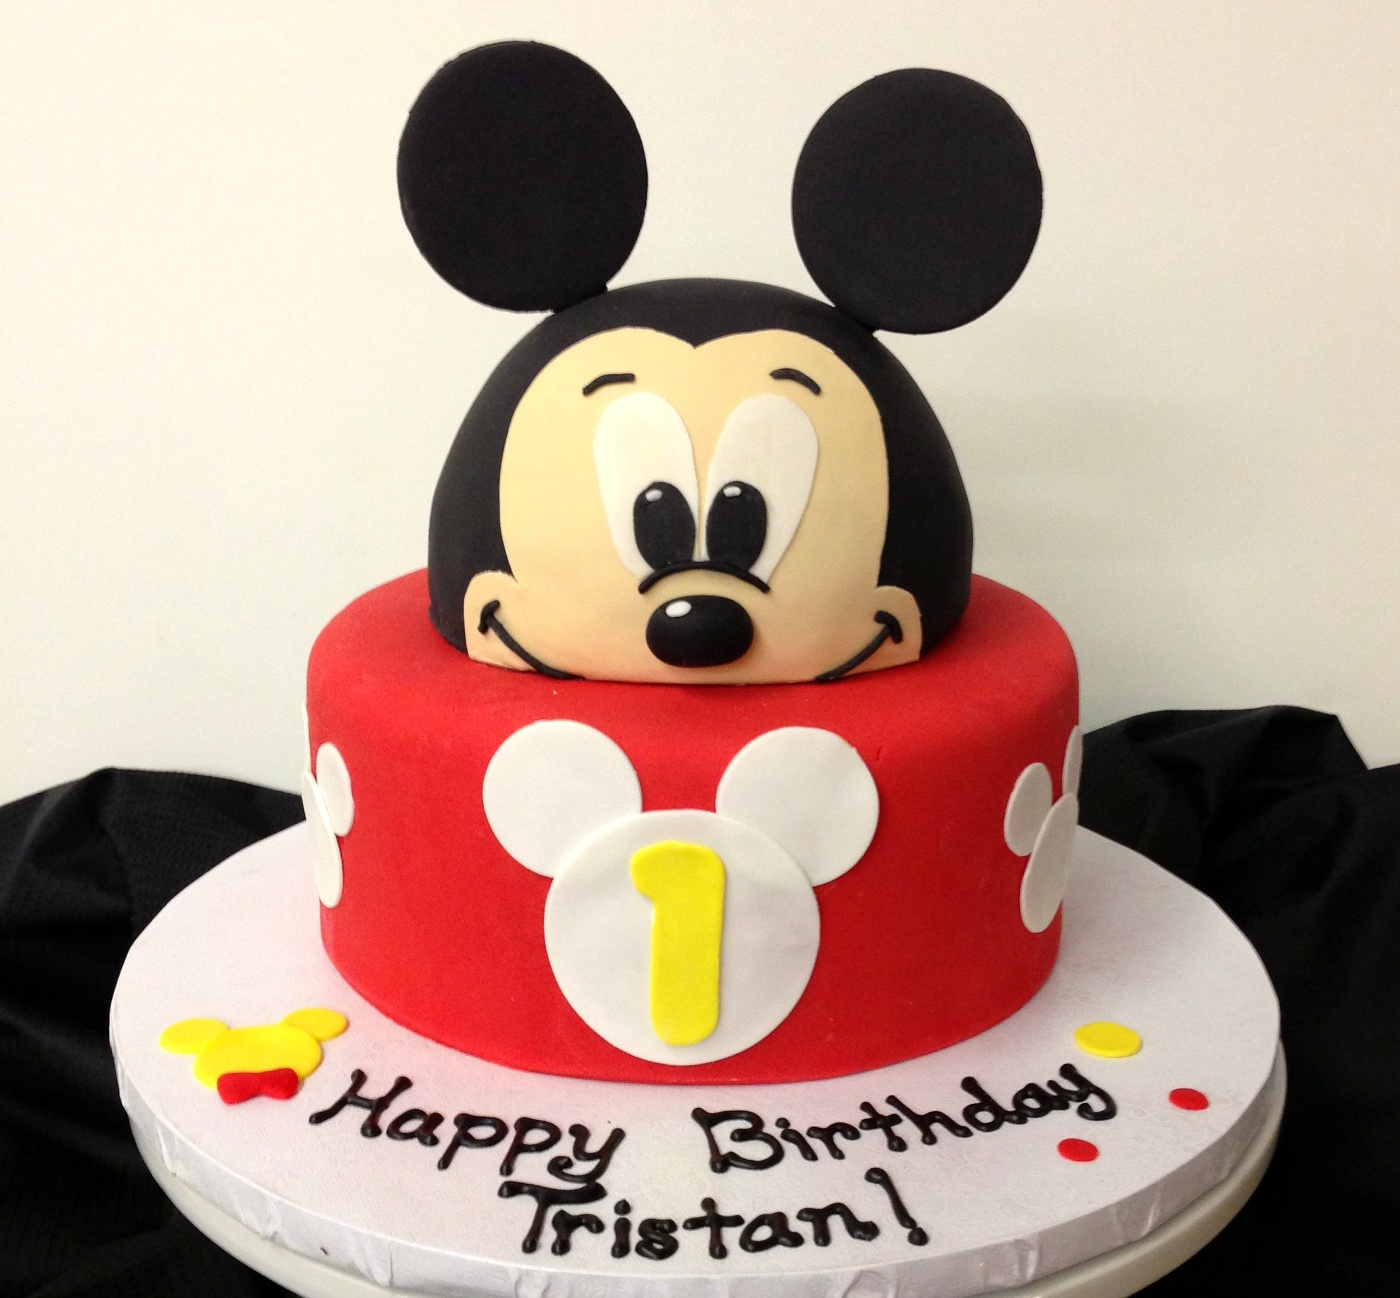 Cartoon cakes (3)